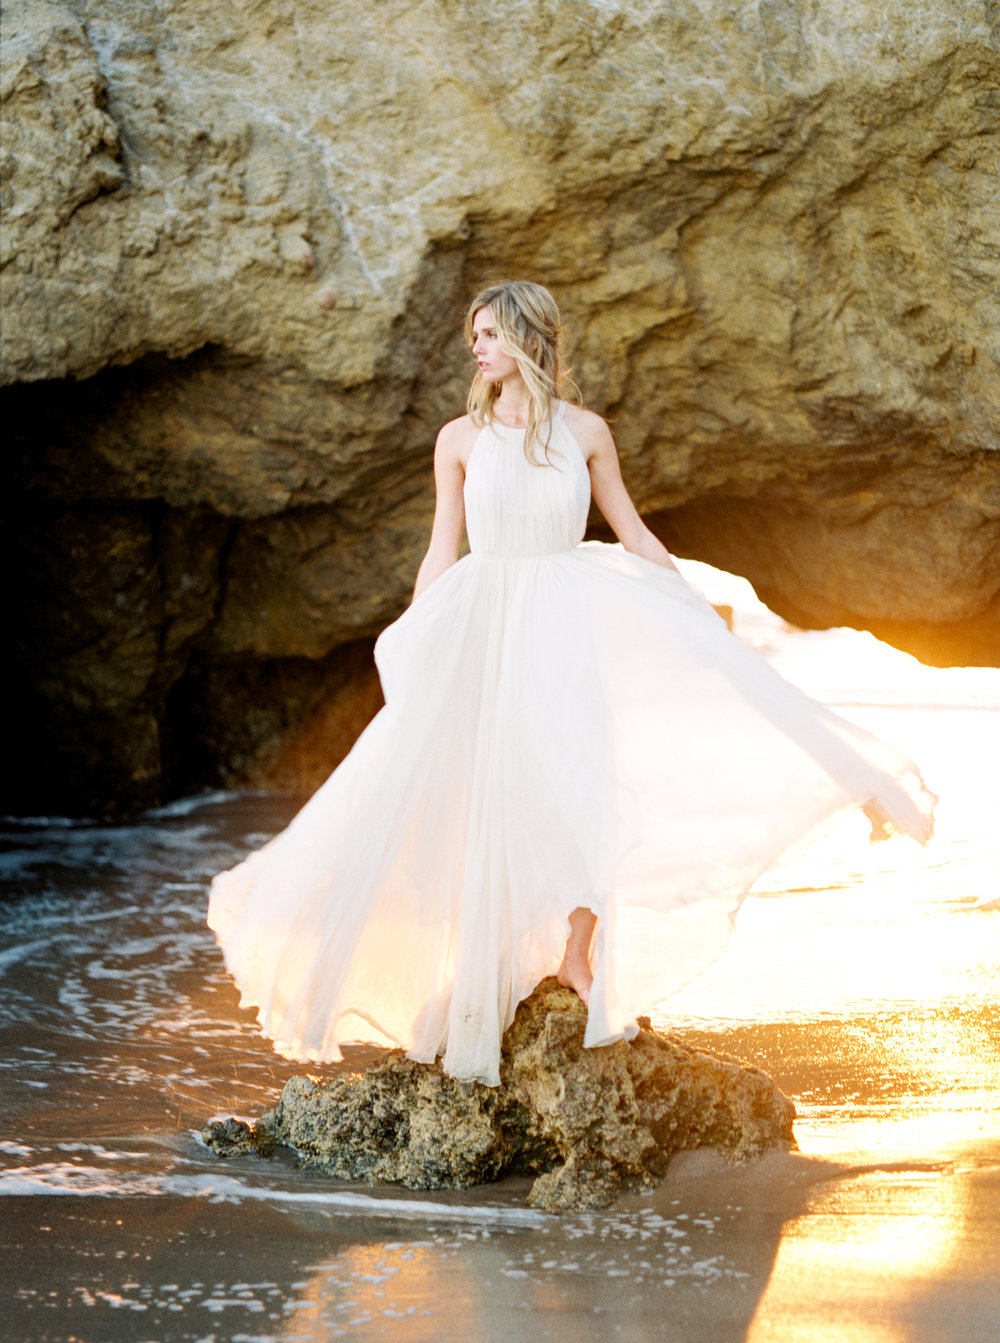 malibu_wedding_bride-82.jpg